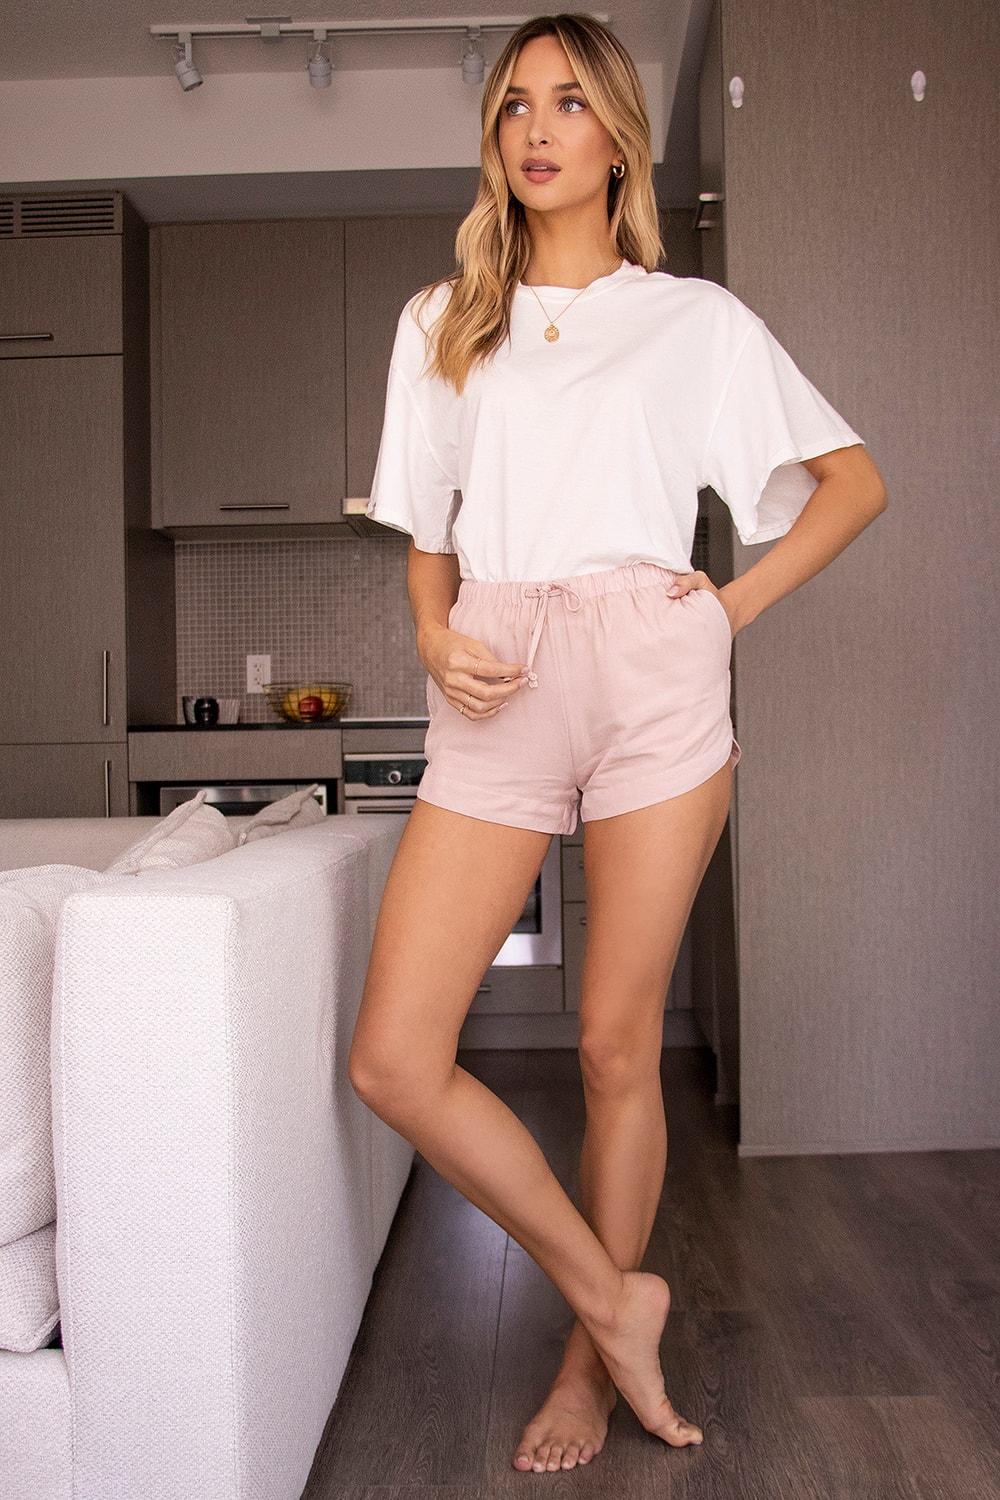 Oversized tee is perfectly matched to these pink cotton shorts